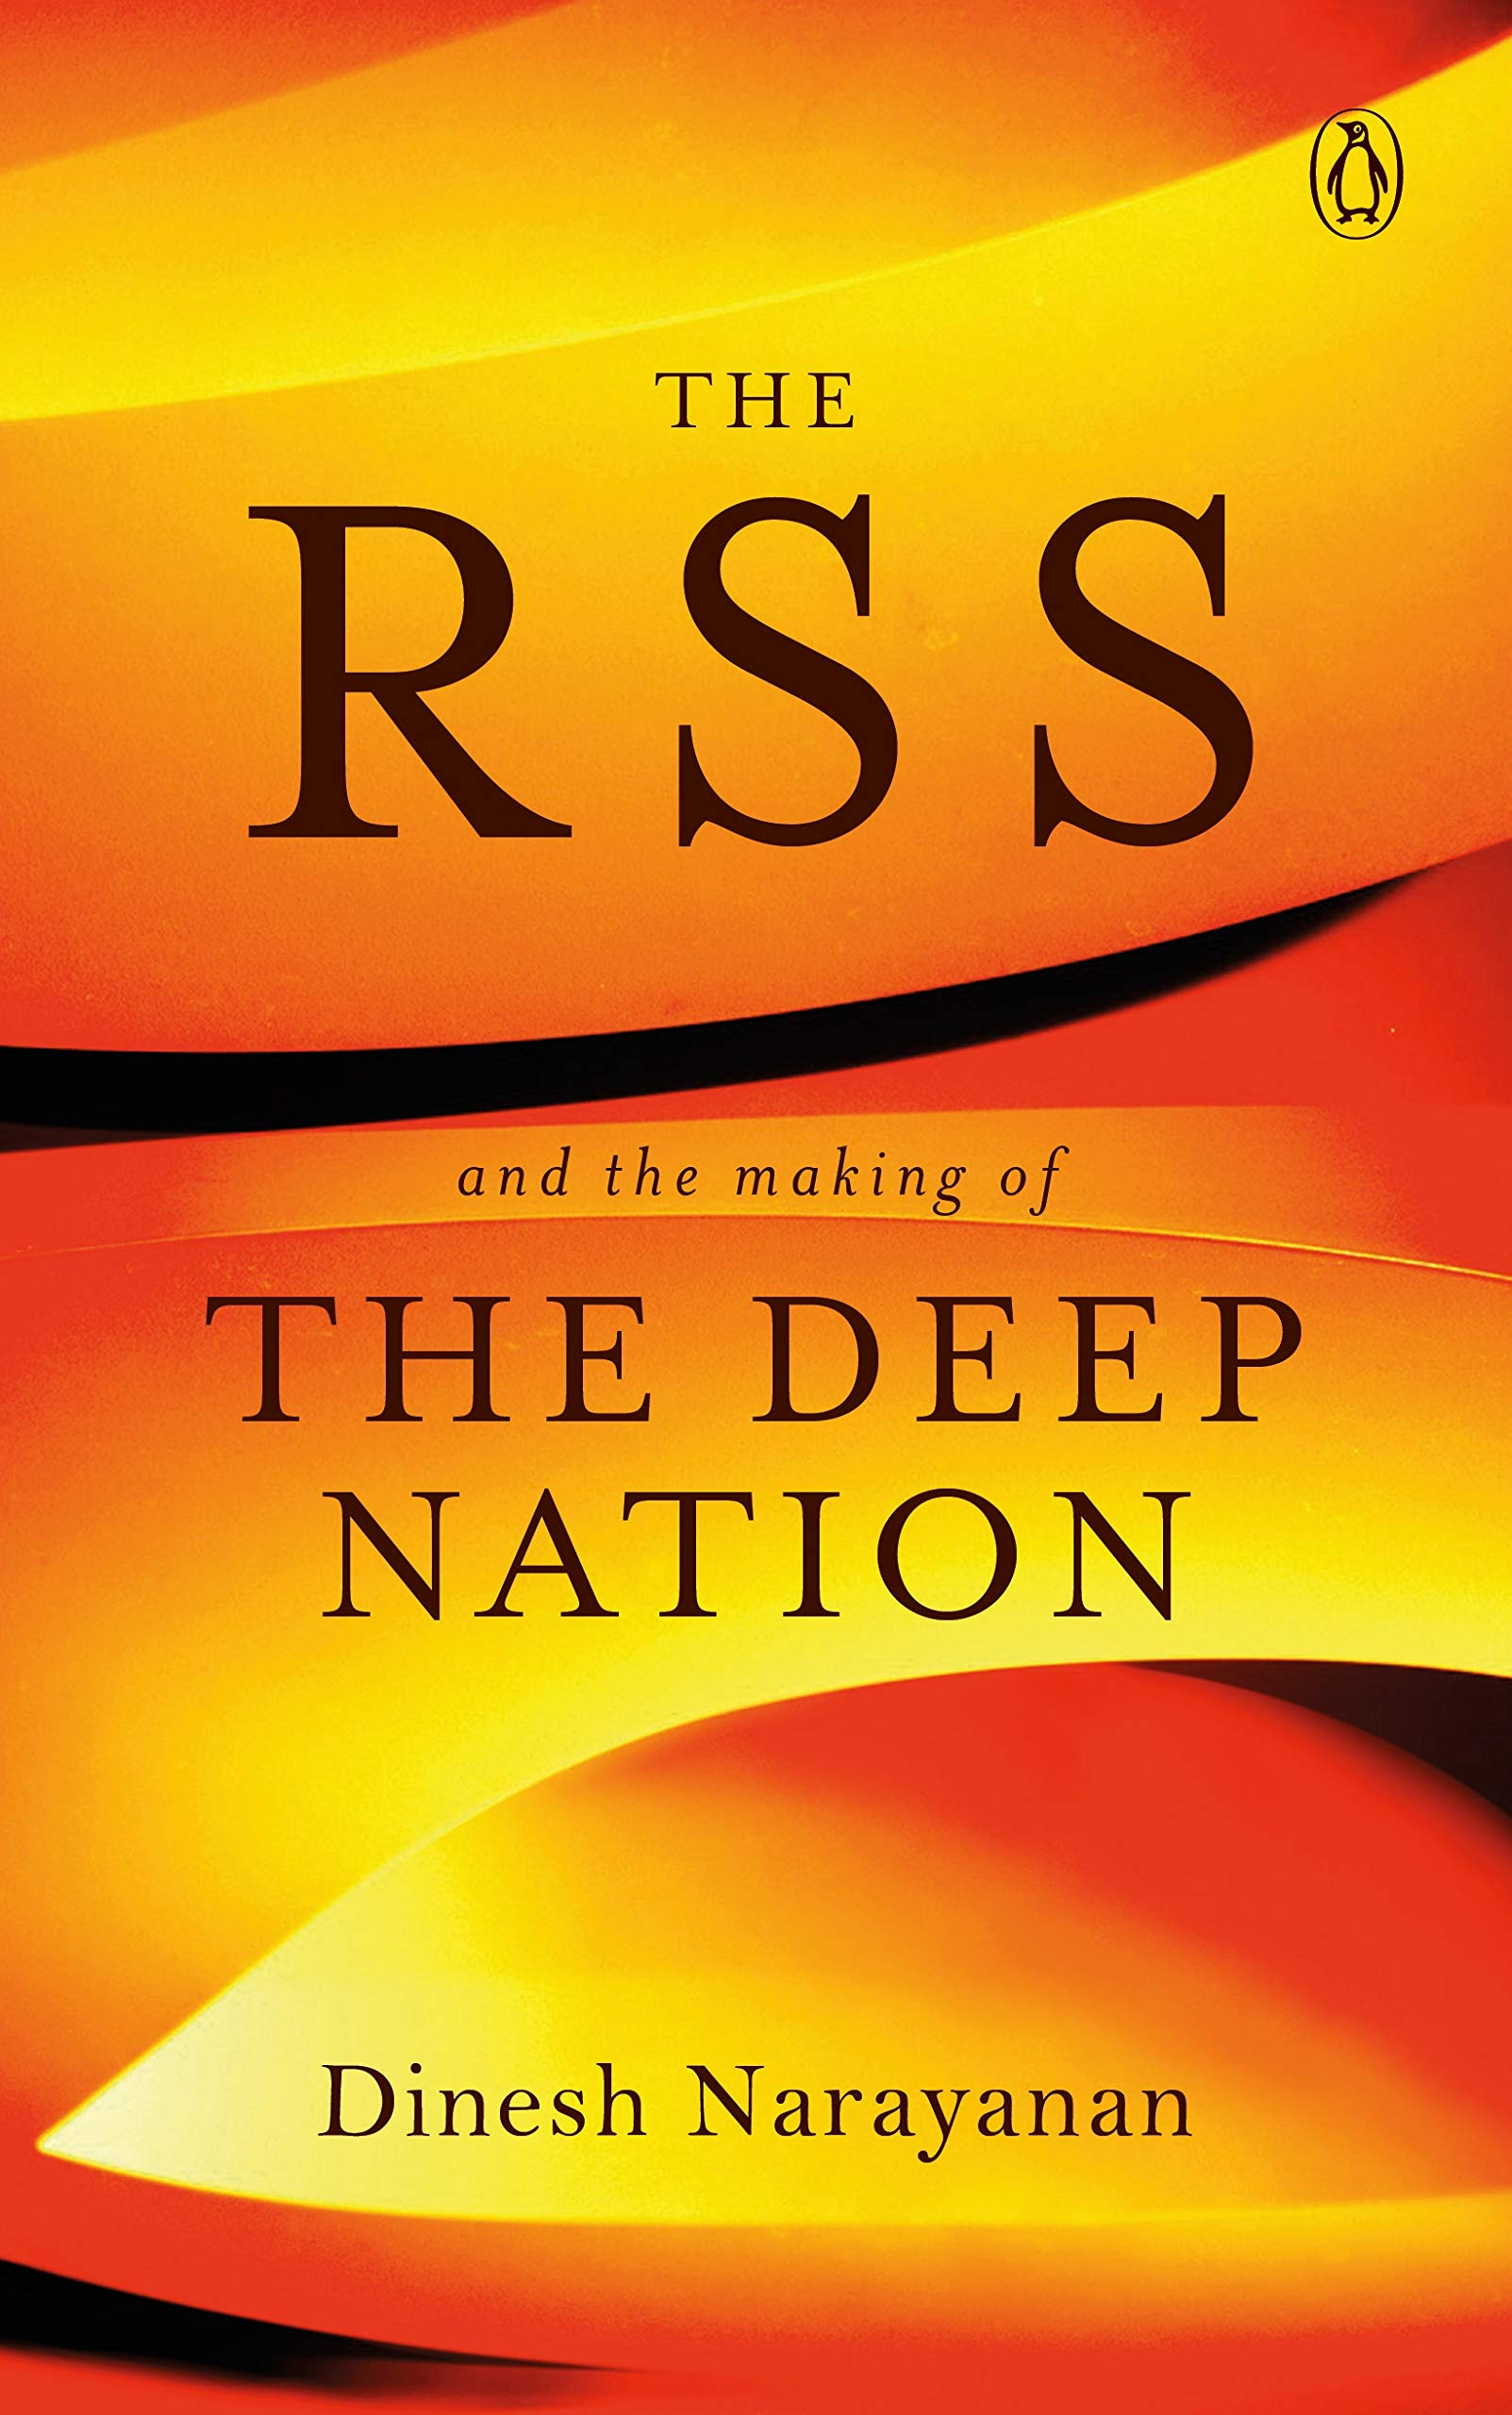 The RSS: And the Making of the Deep Nation /